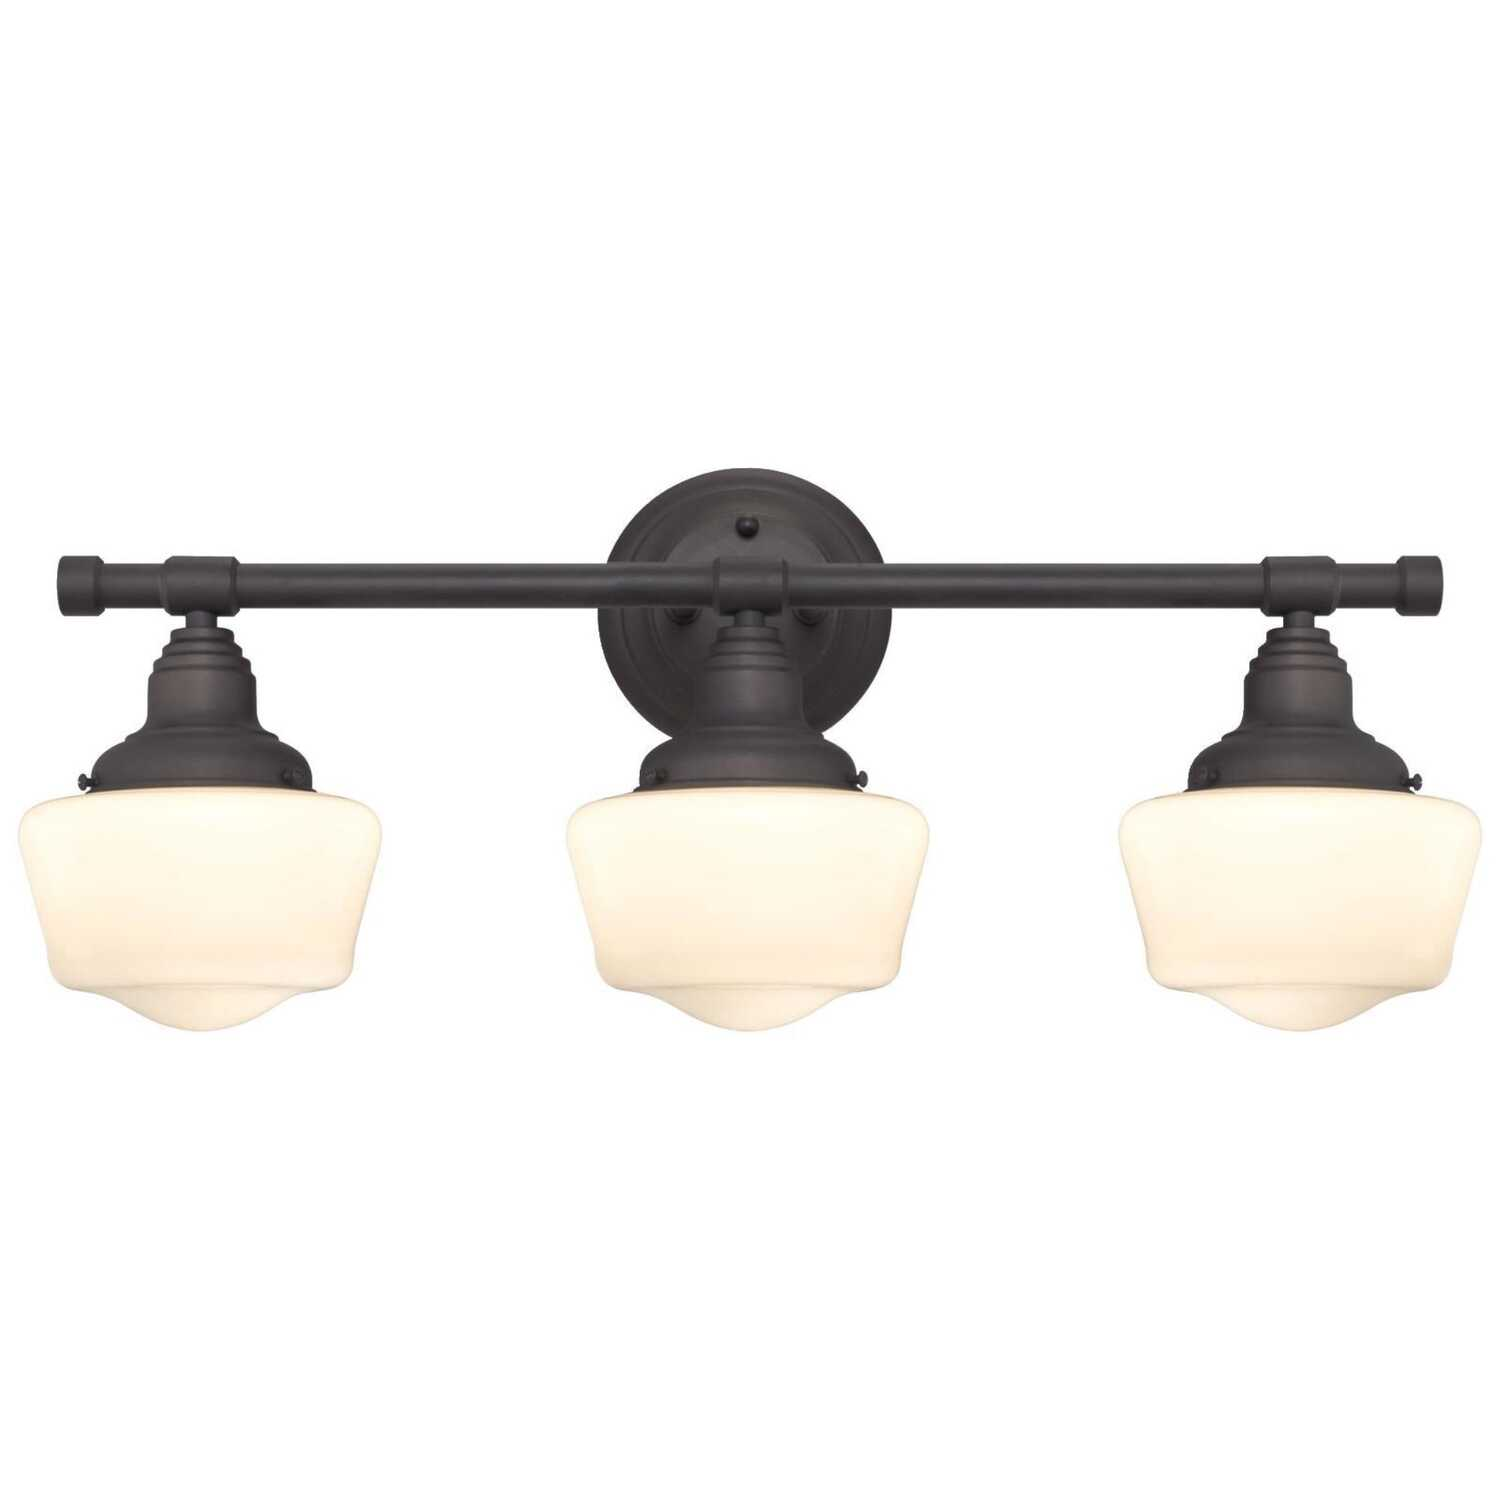 Westinghouse  Oil Rubbed Bronze  White  Wall Sconce  3